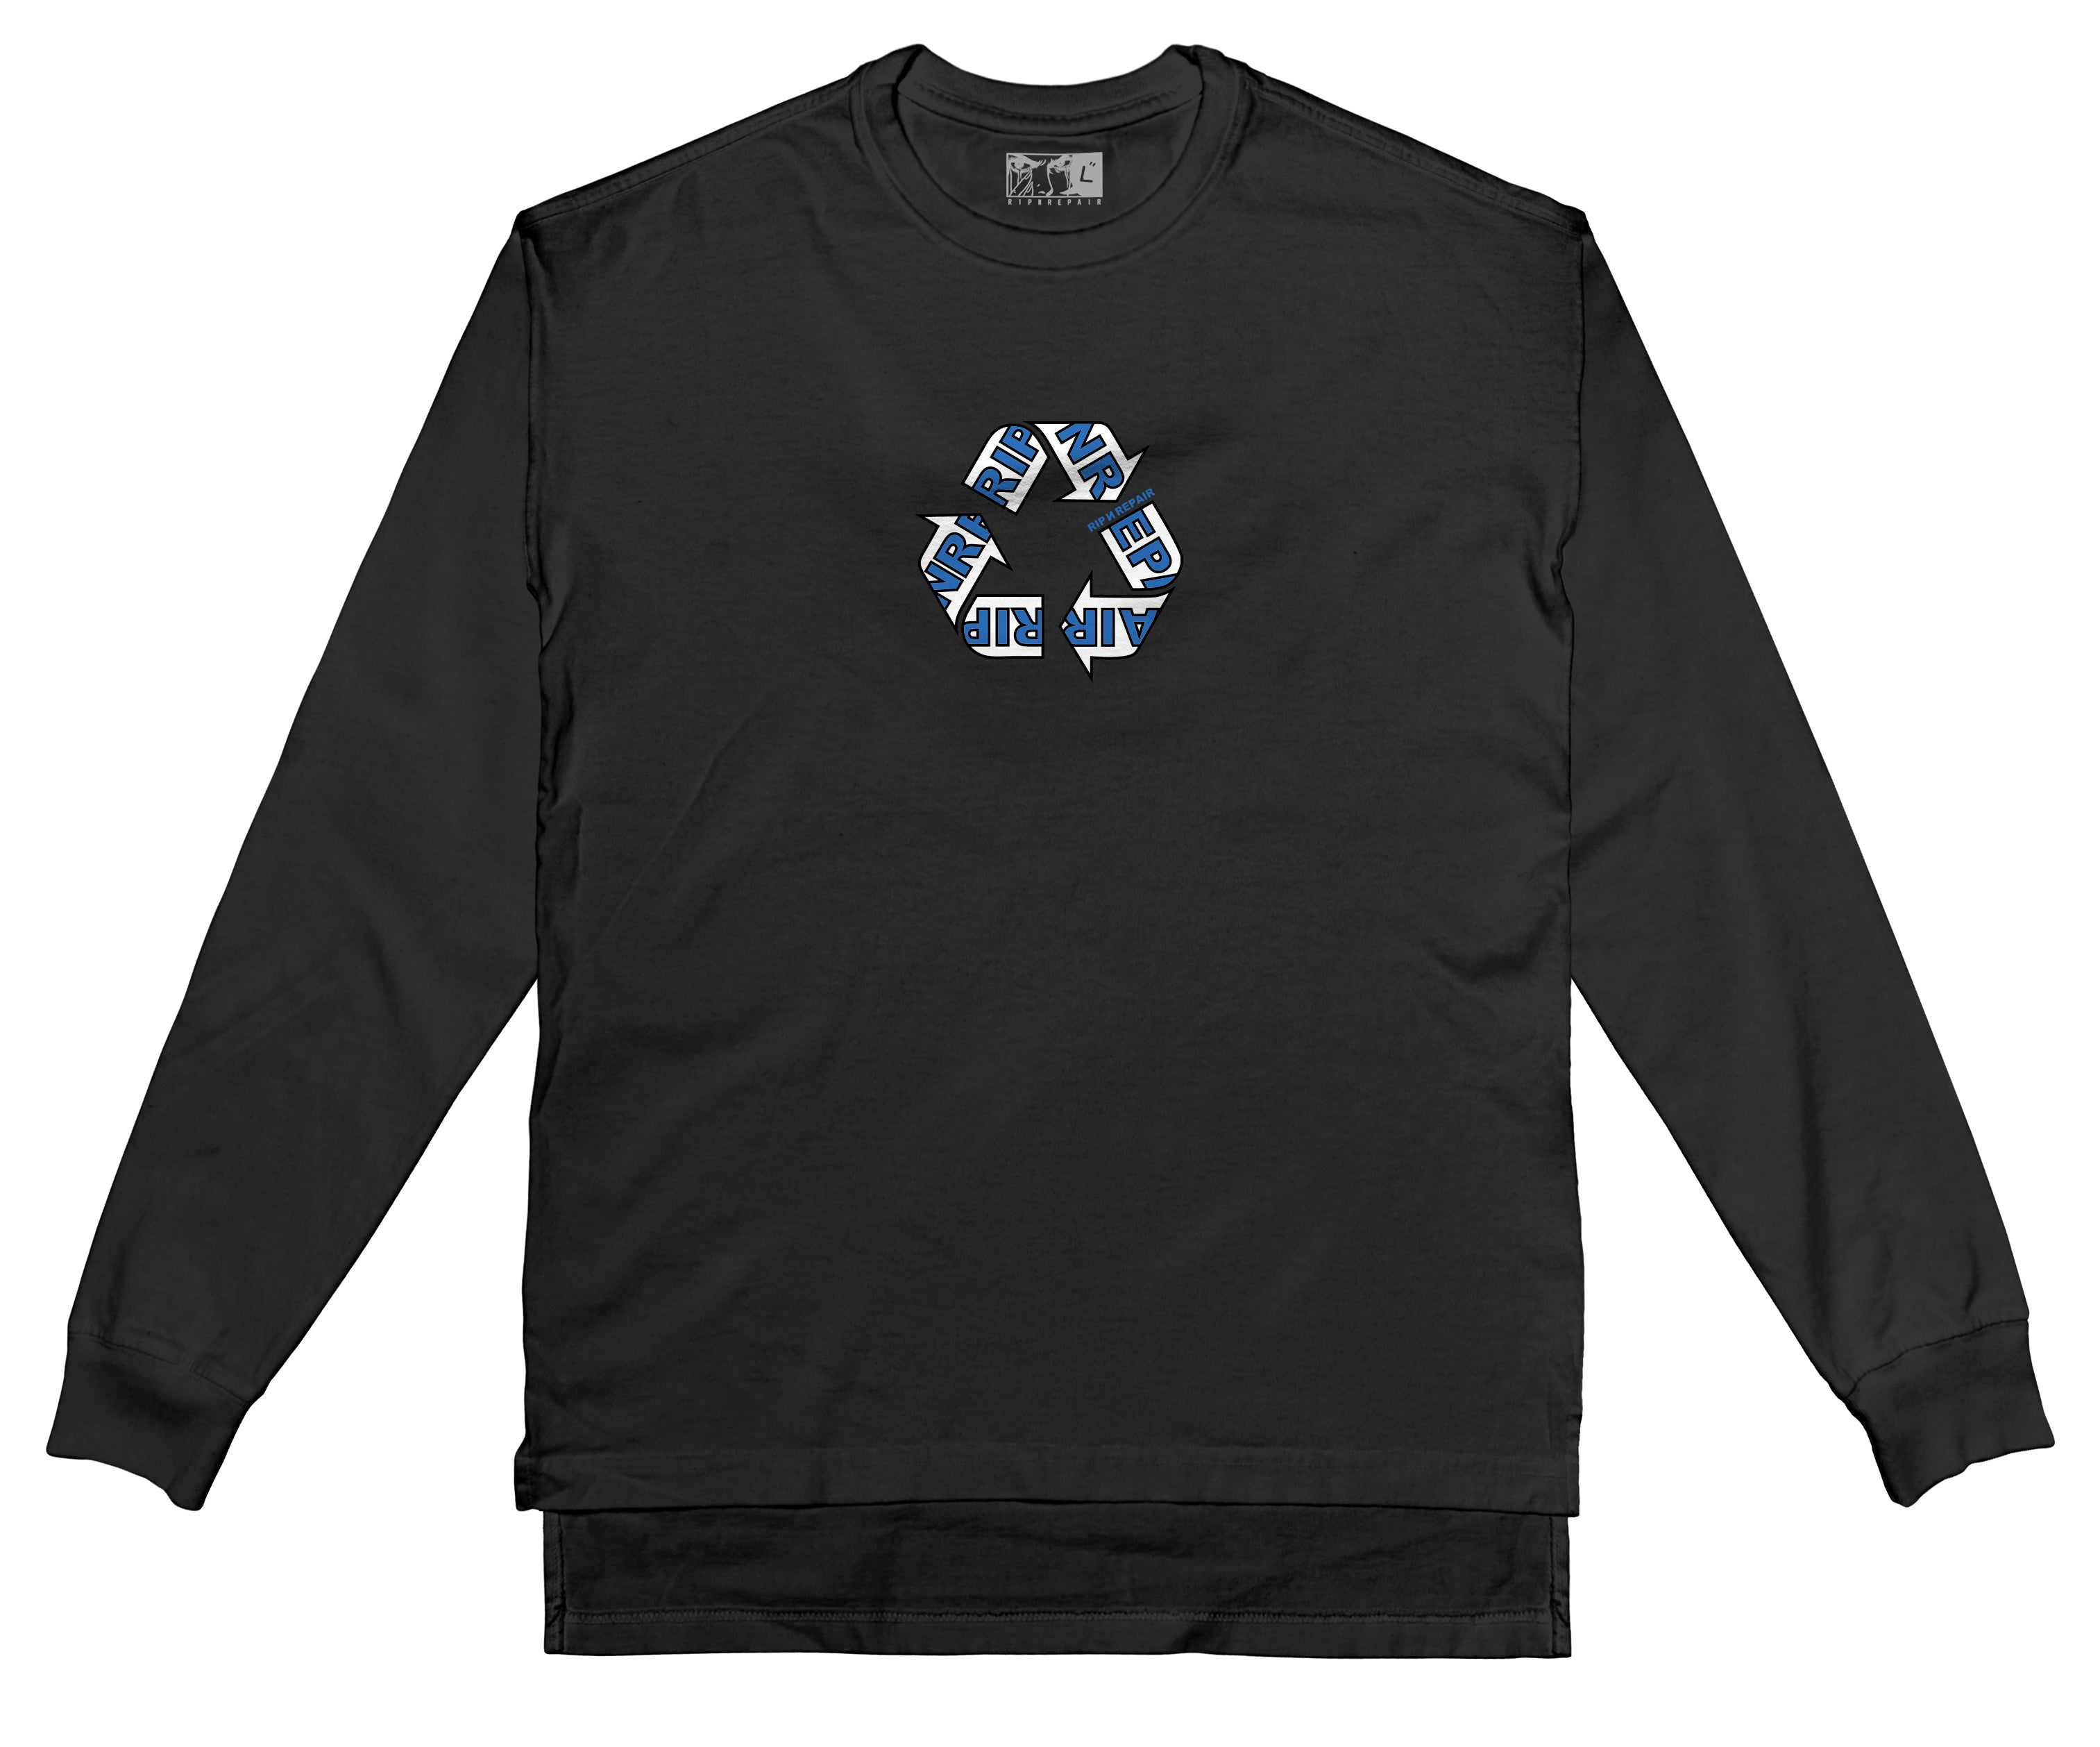 WIP - Long sleeve T-Shirt (Black) - RIPNRPR